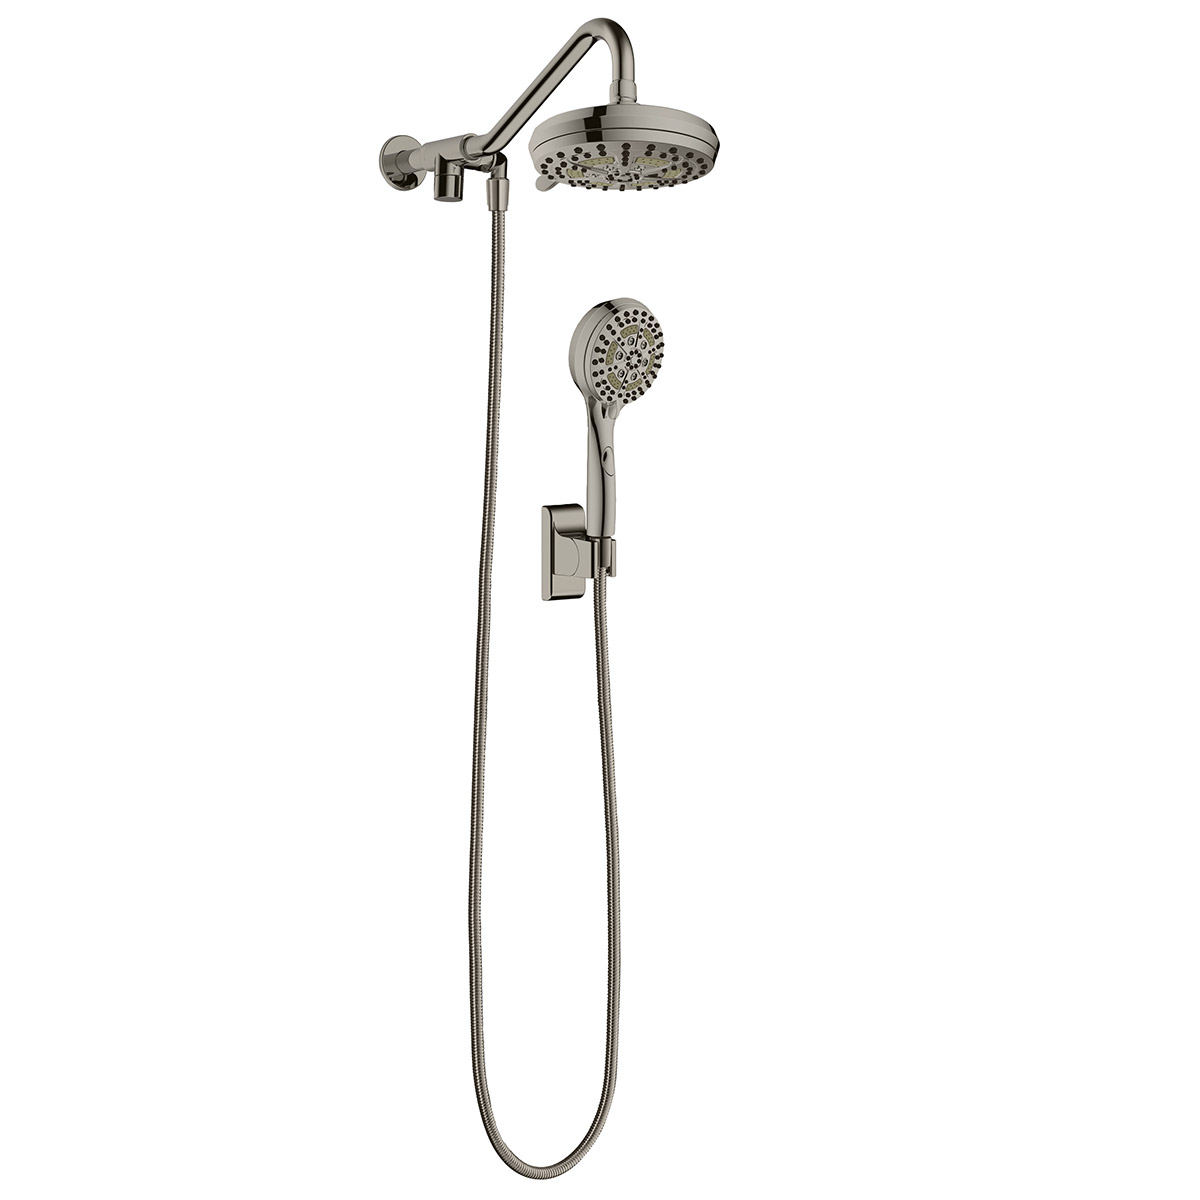 PULSE ShowerSpas Brushed-Nickel Shower System - Oasis Shower System